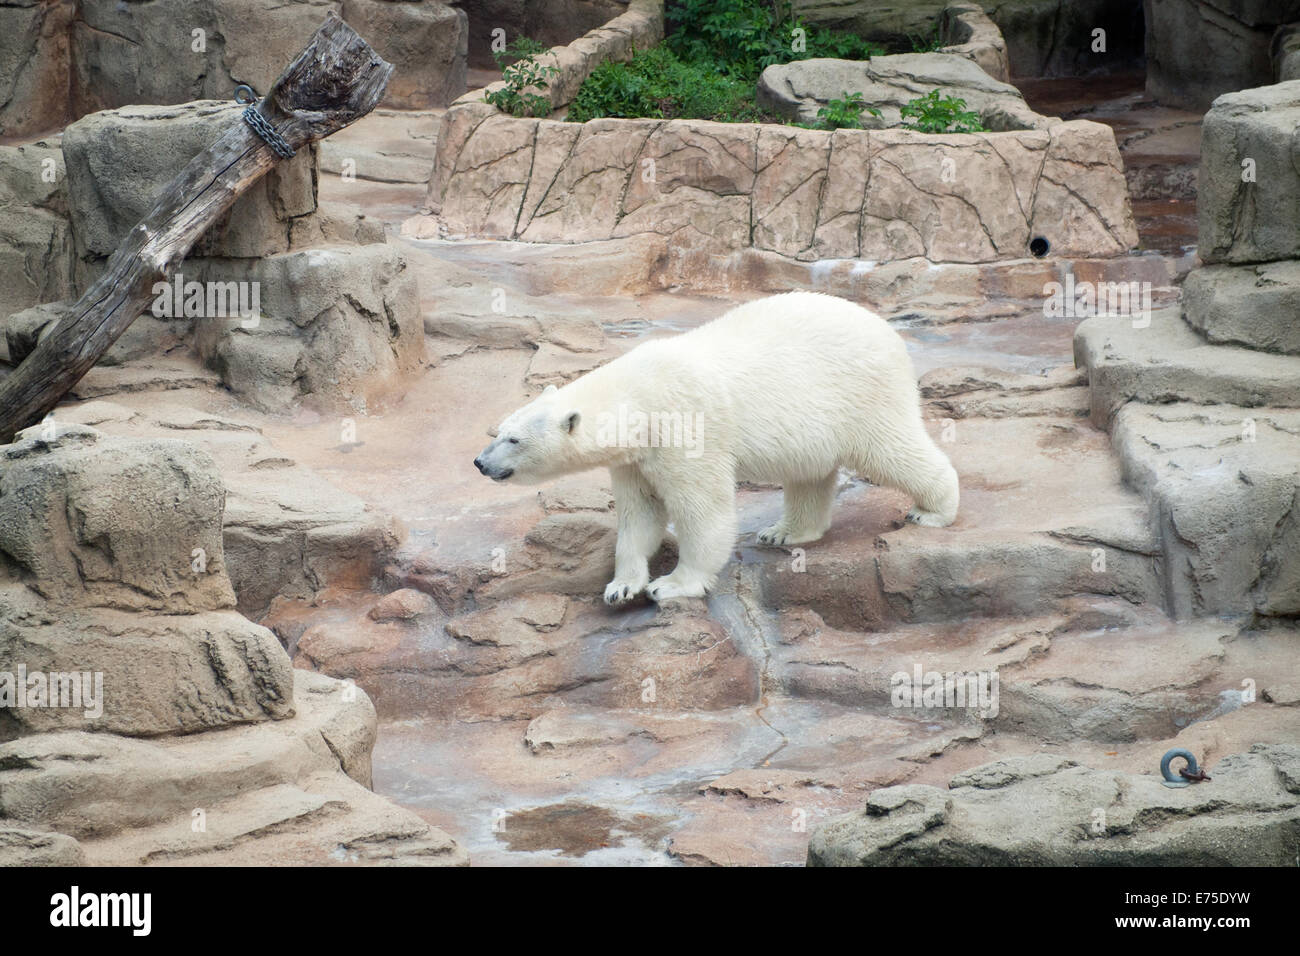 A view of Anana, the resident female polar bear of the Lincoln Park Zoo in Chicago, Illinois. - Stock Image